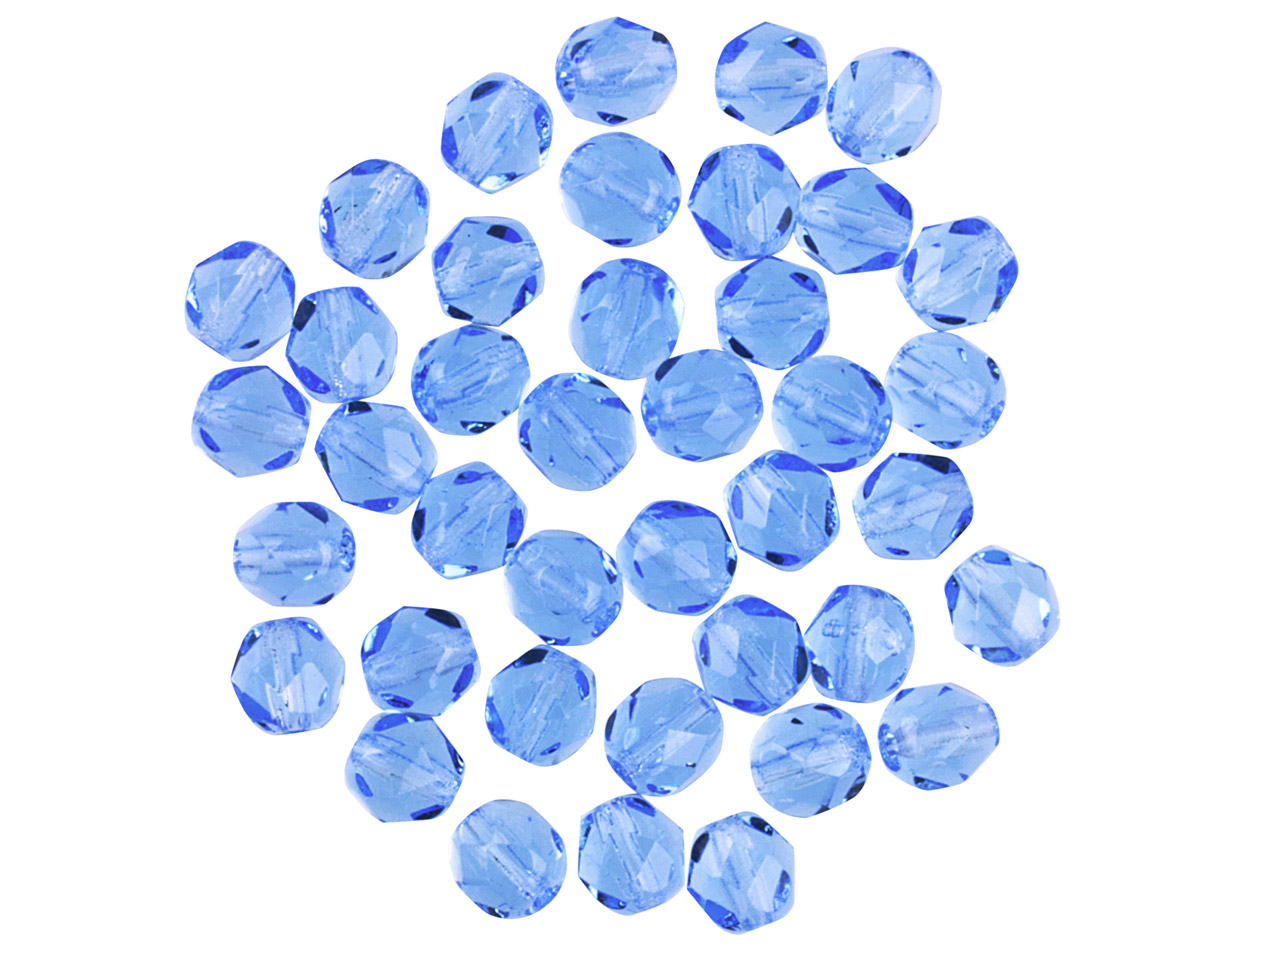 Preciosa 6mm Czech Fire Polished   Glass Beads Capri Blue,            Pack of 100,